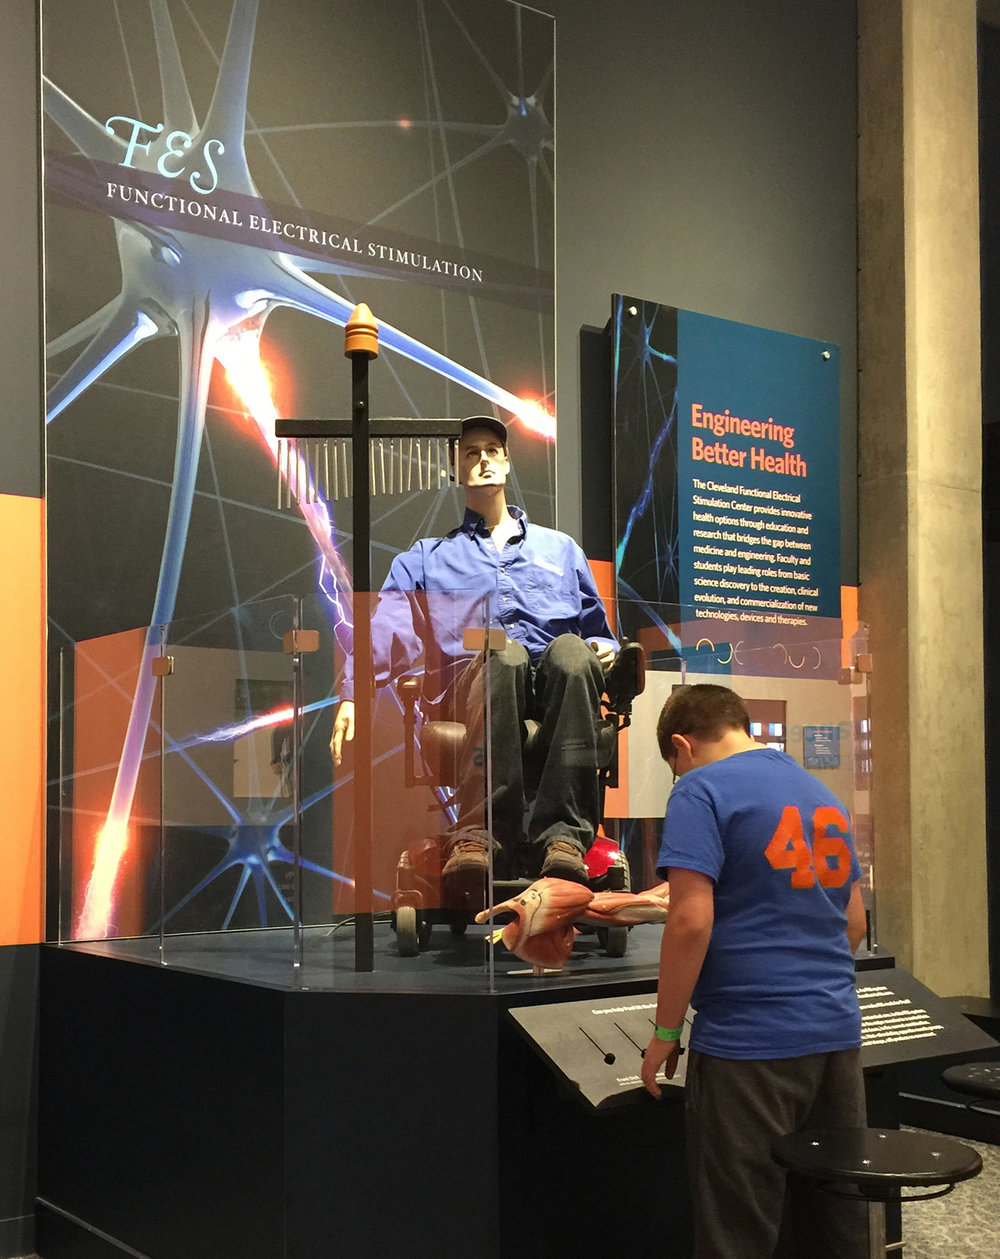 Functional Electrical Stimulation Robot Exhibit